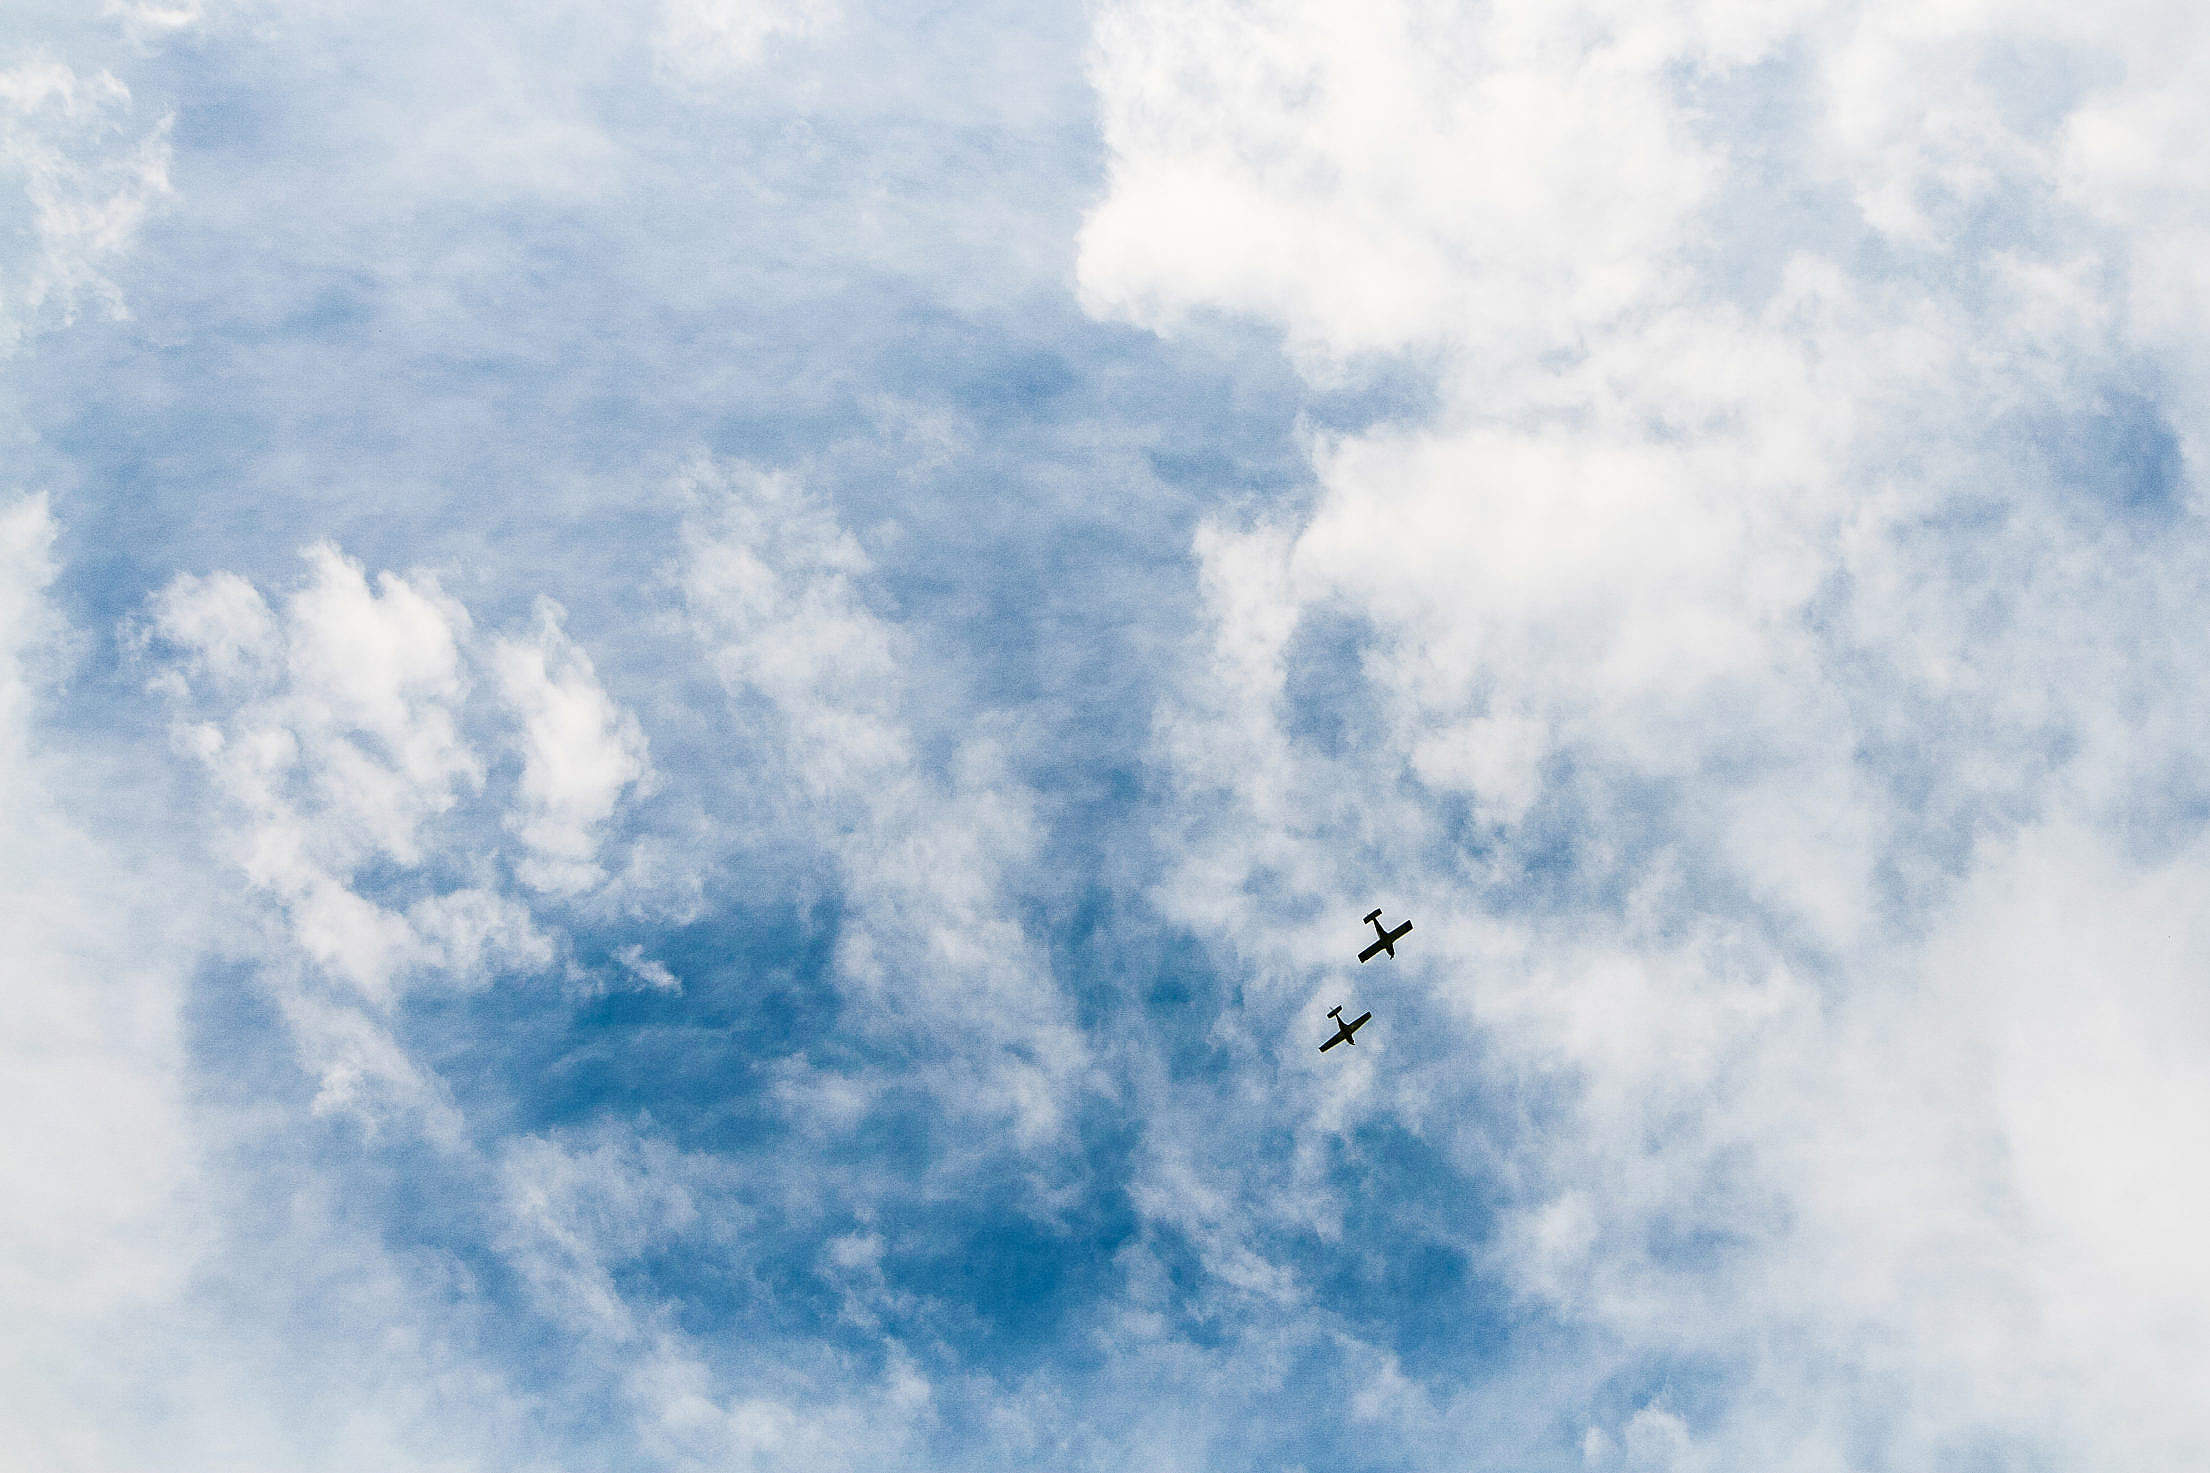 Two Little Planes Free Stock Photo